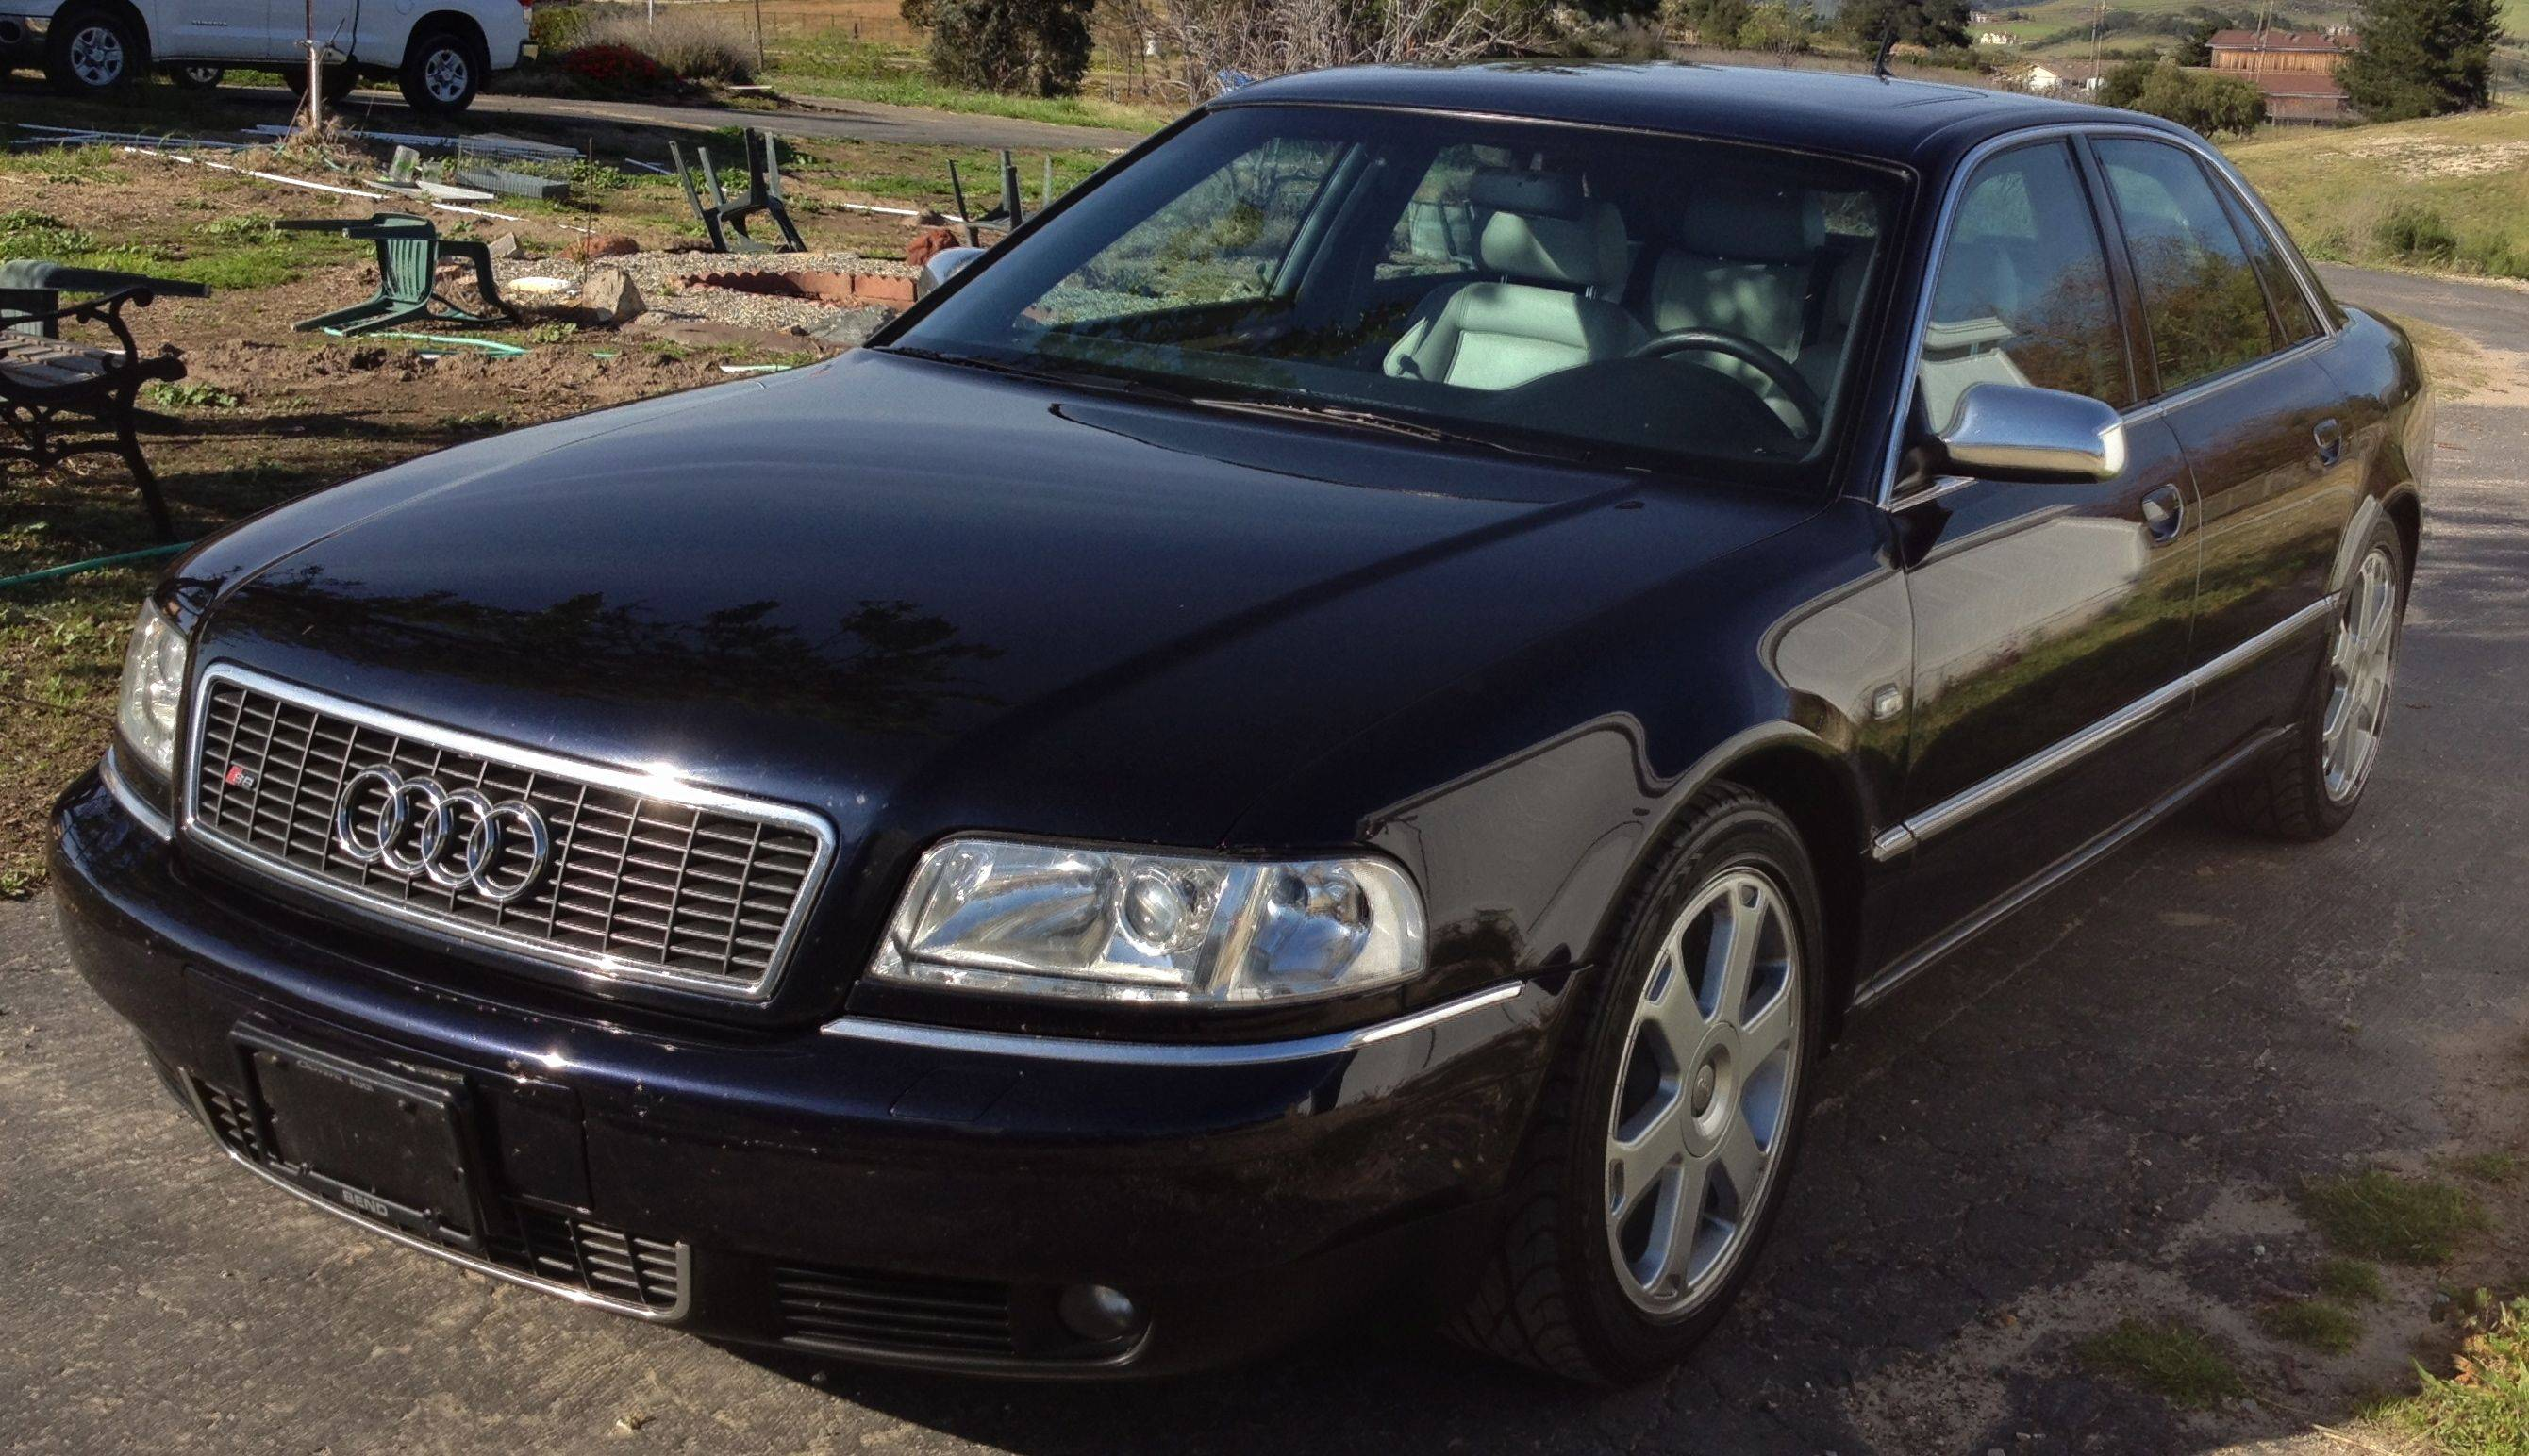 1997 Audi S8 (d2) - pictures, information and specs - Auto ...